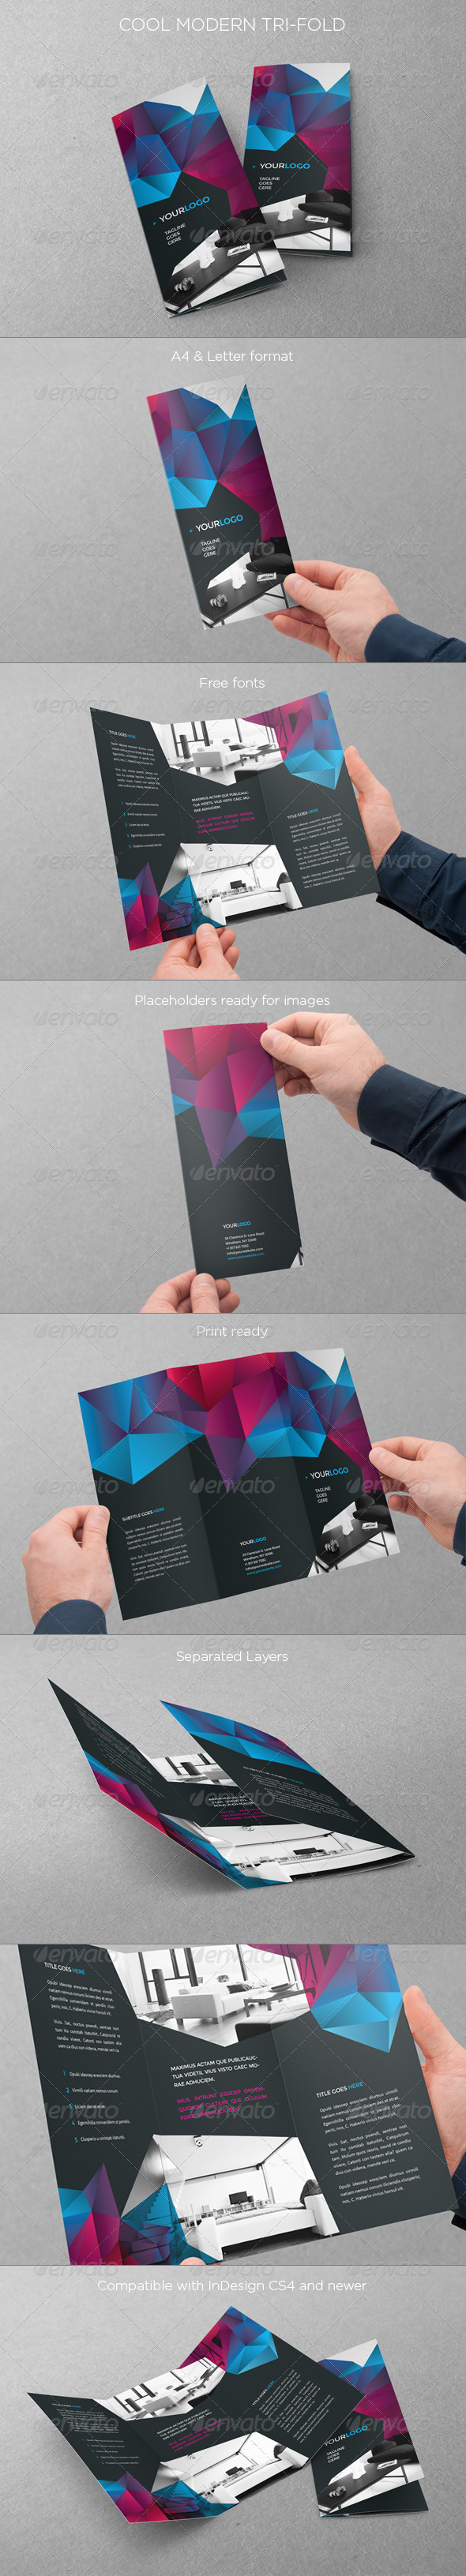 GraphicRiver Cool Modern Trifold 7791782